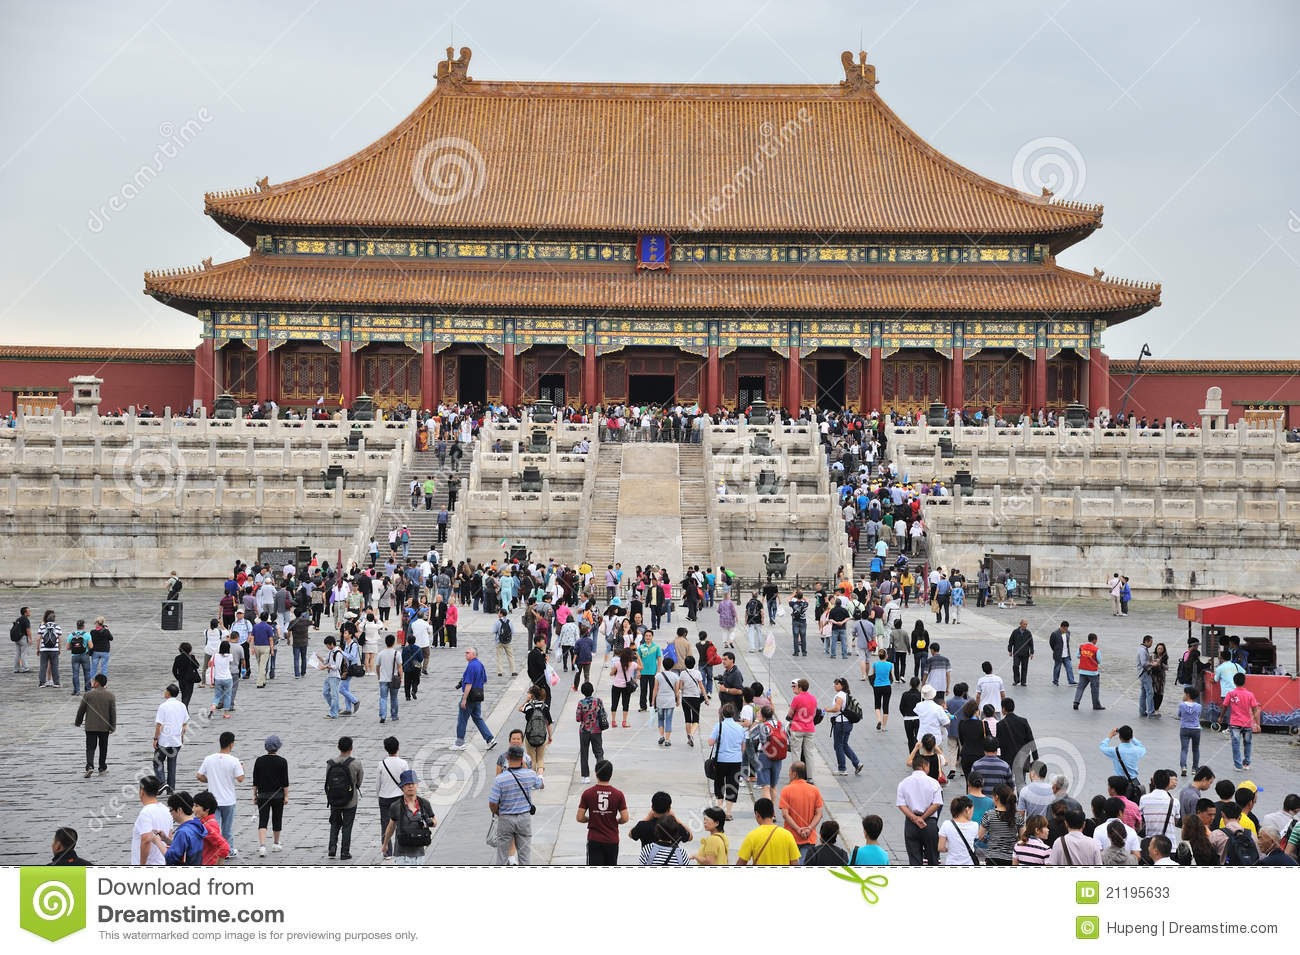 tai he dian,The Forbidden City (Gu Gong)